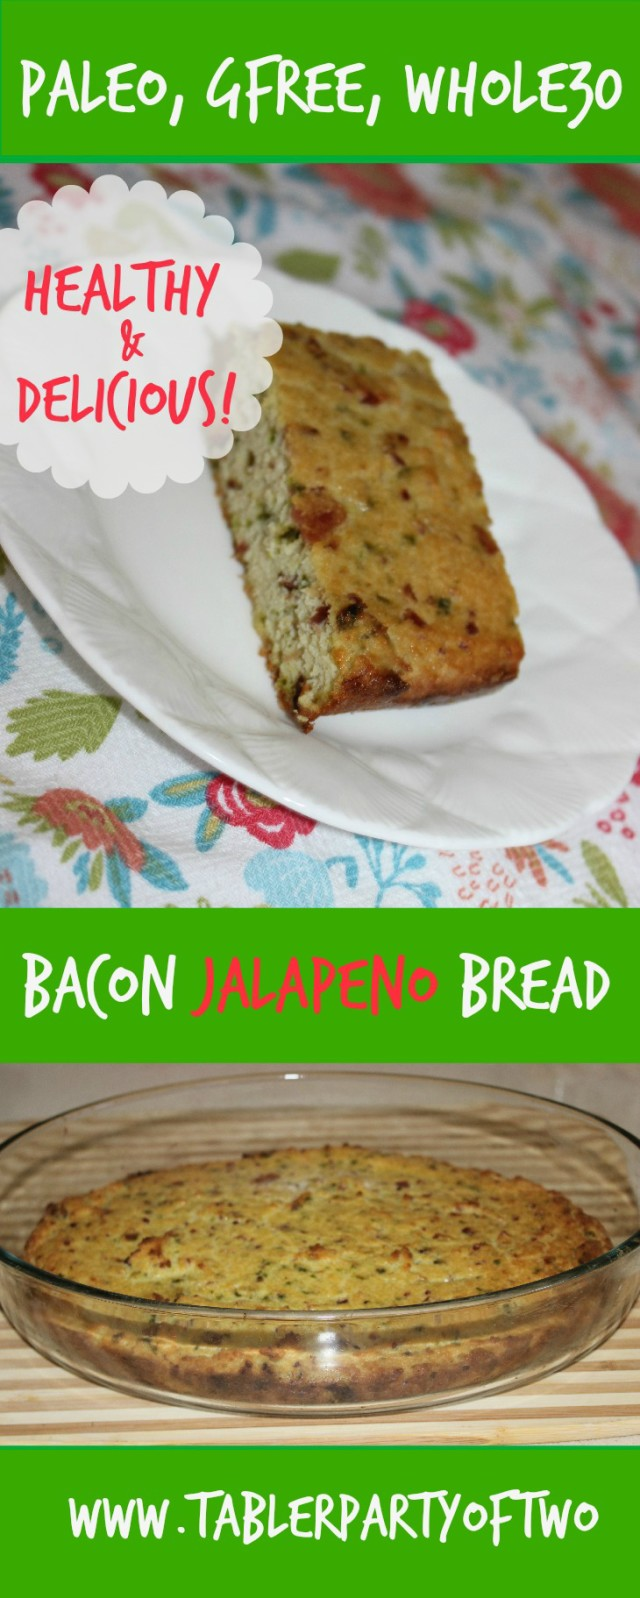 Super yummy PALEO Bacon Jalapeno Bread!